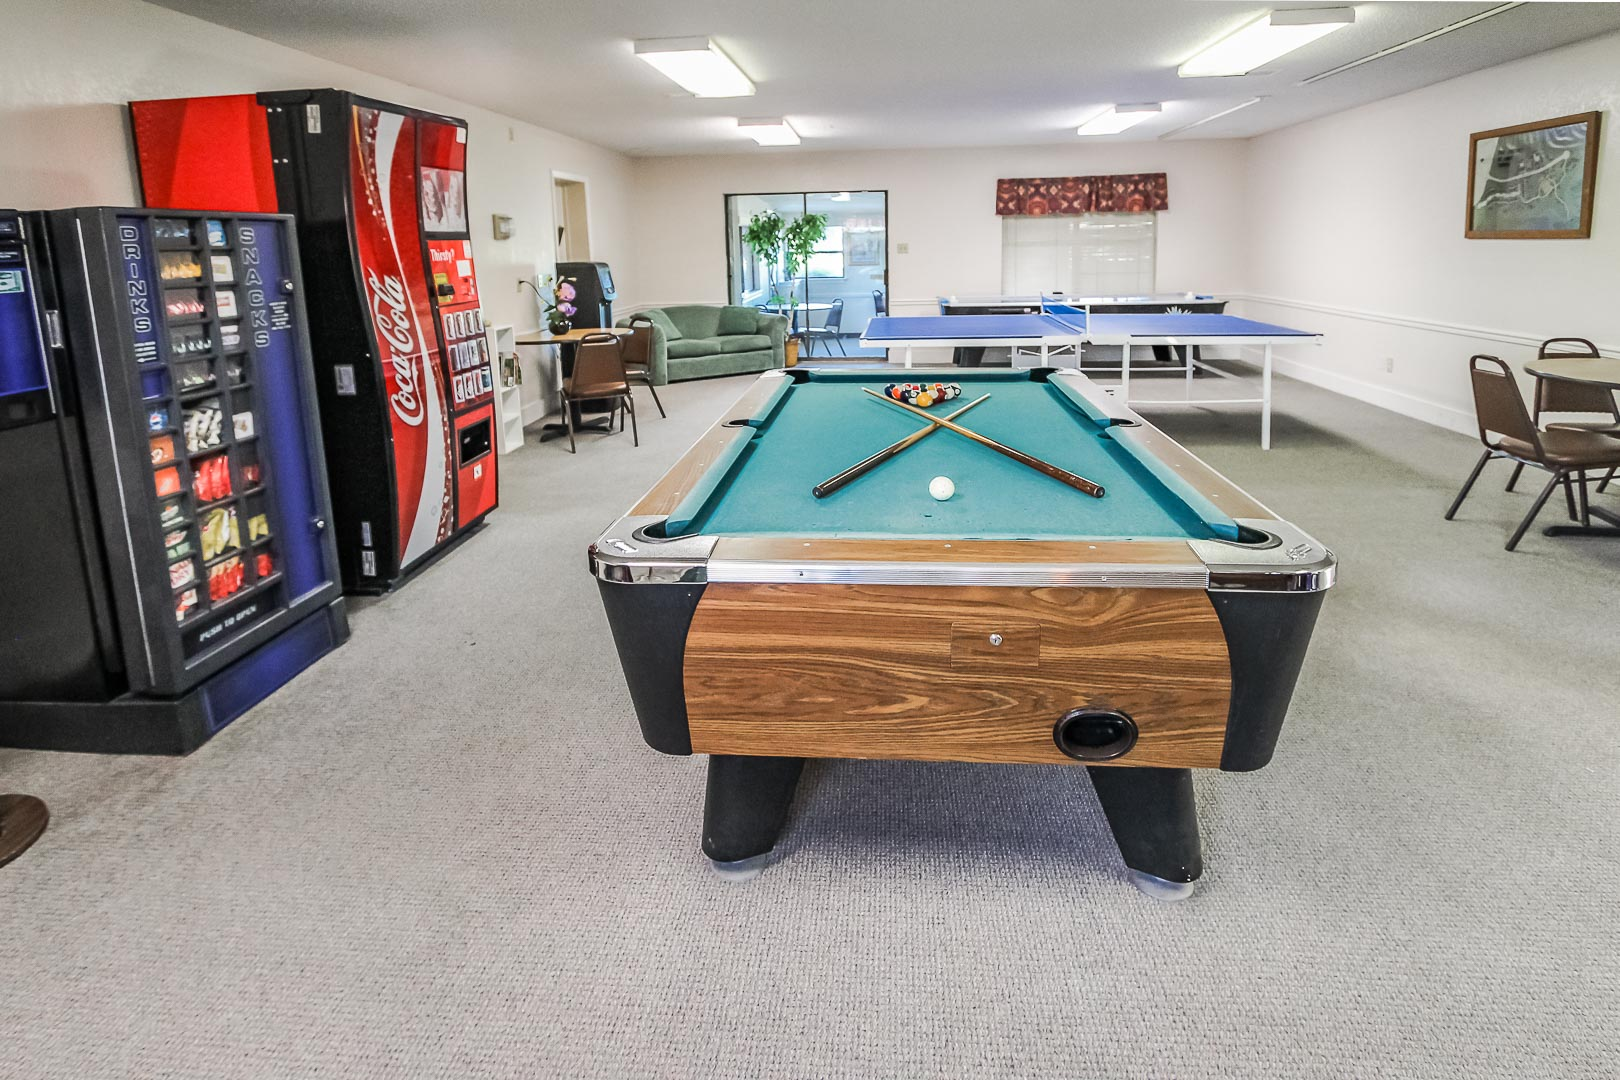 A vibrant game room at VRI's Vacation Village at Lake Travis in Texas.